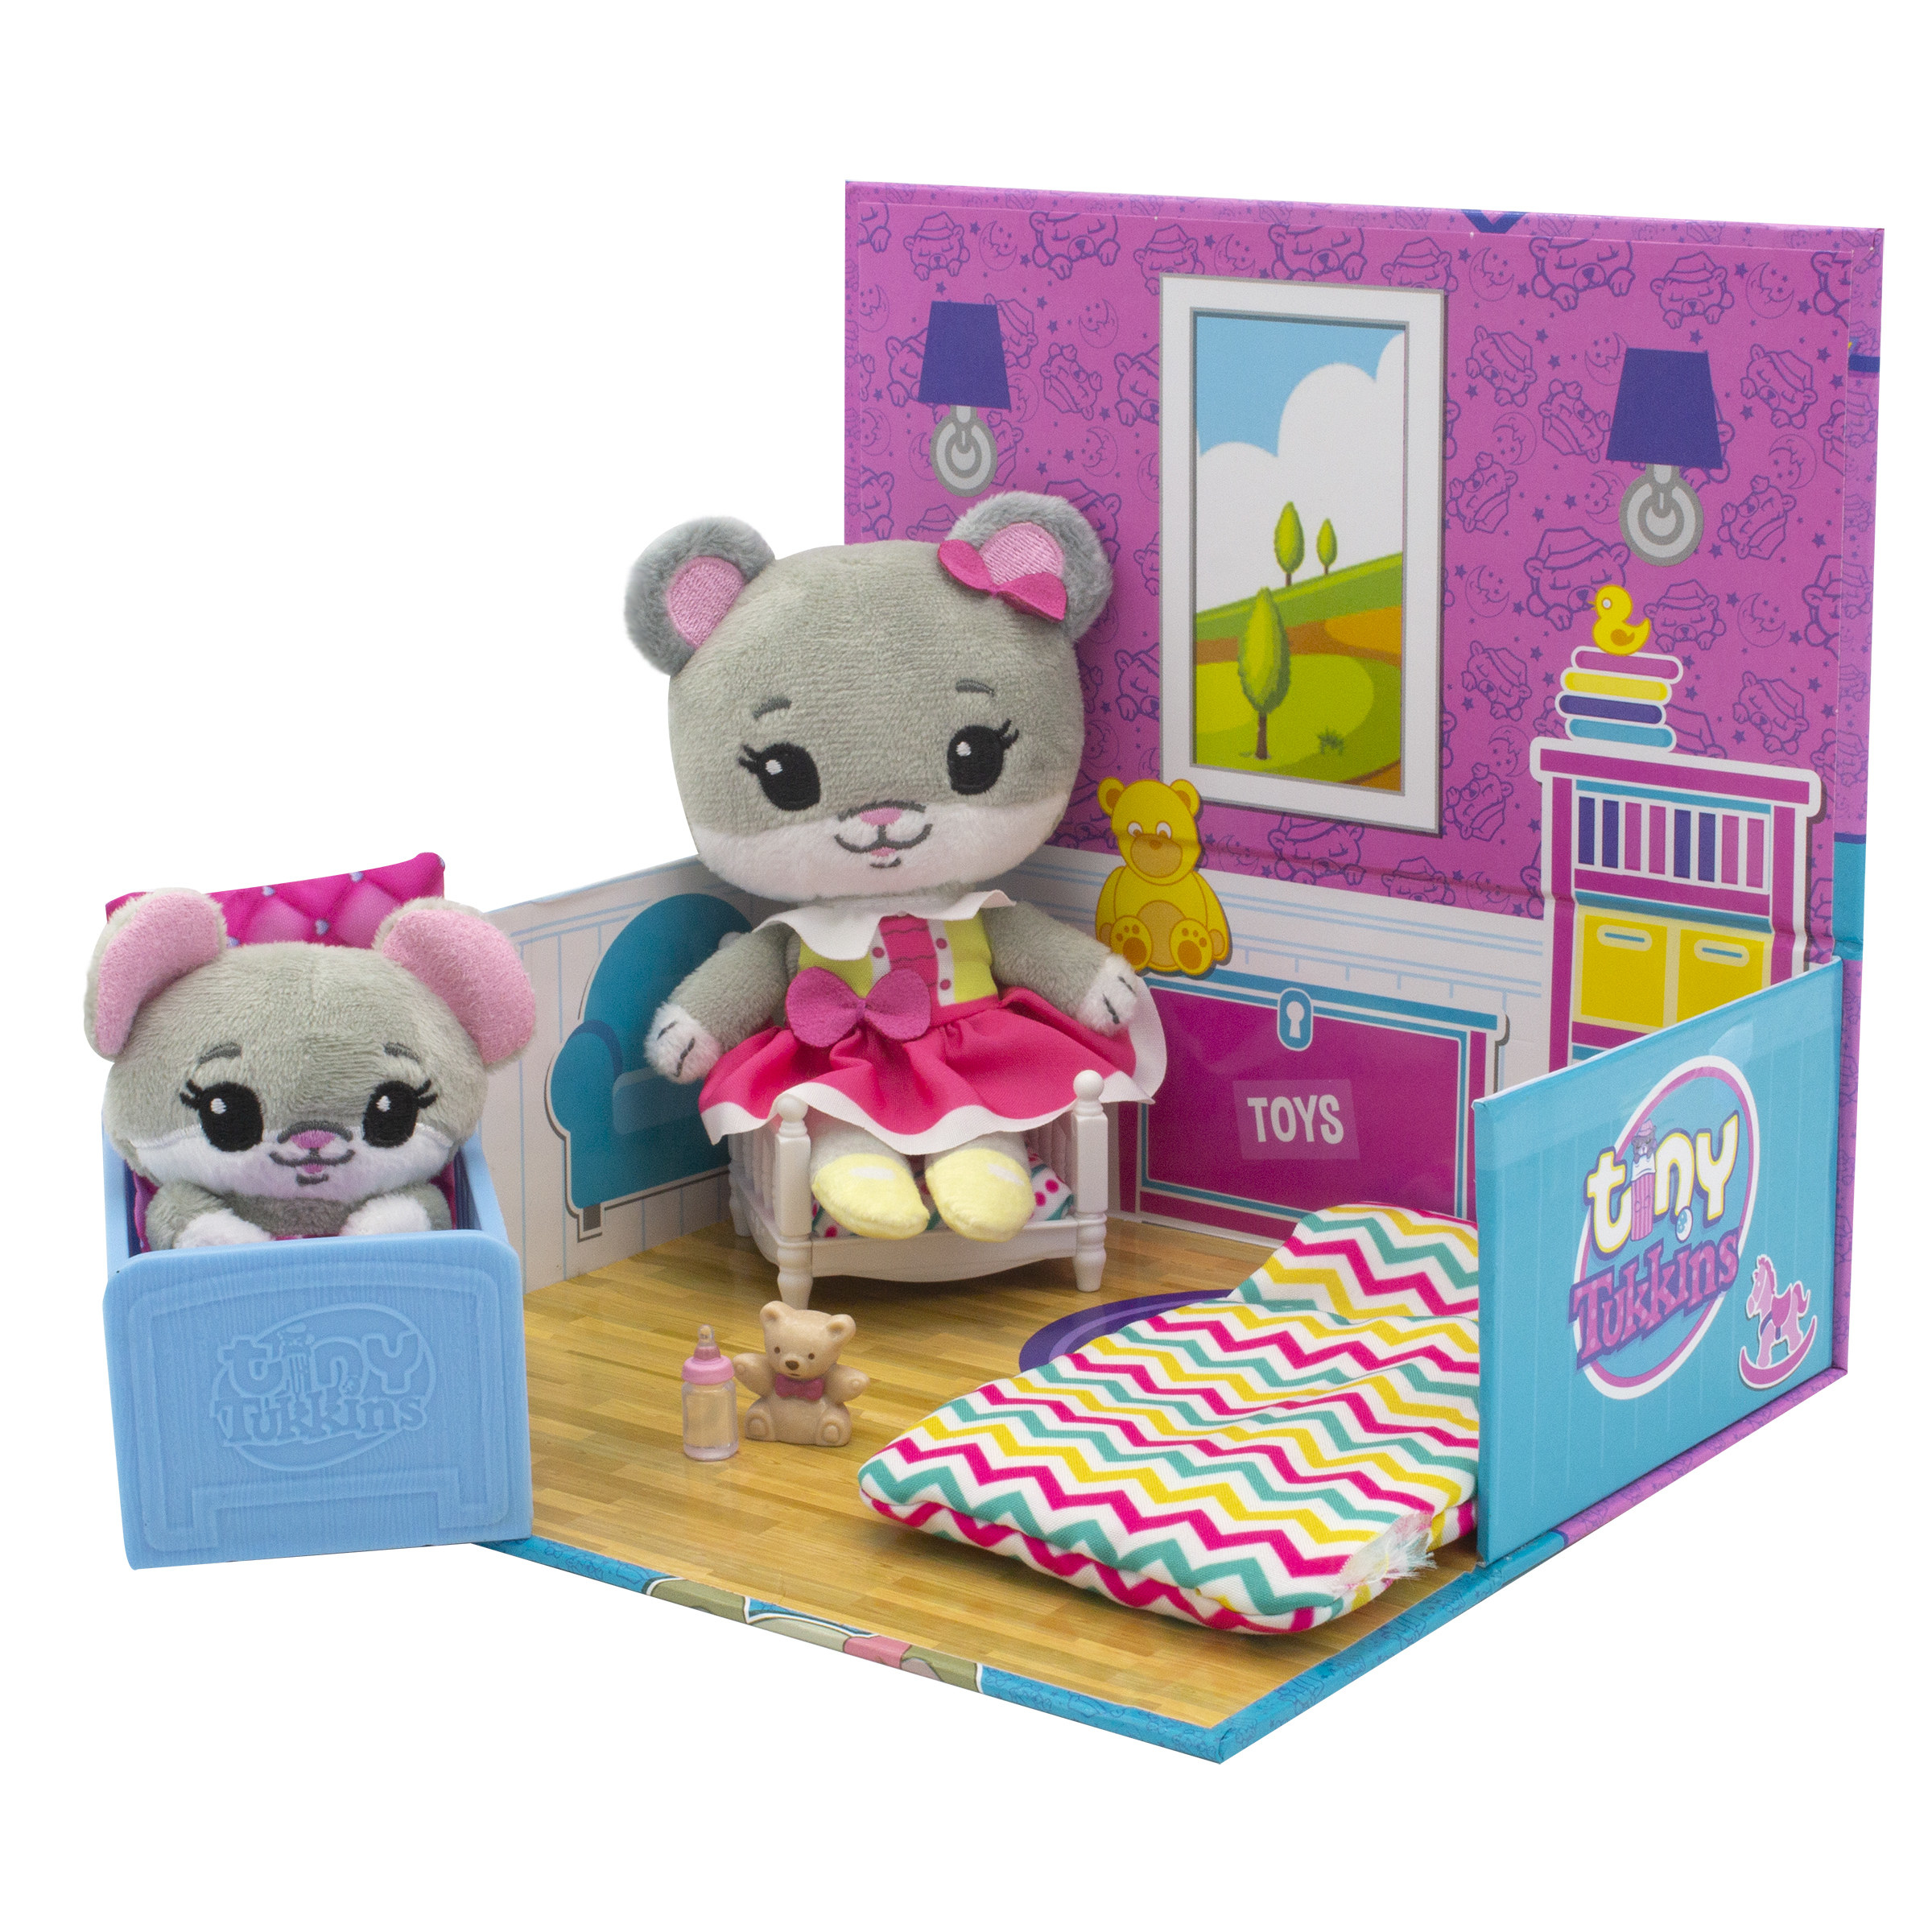 A mouse toy in a colorful room playset